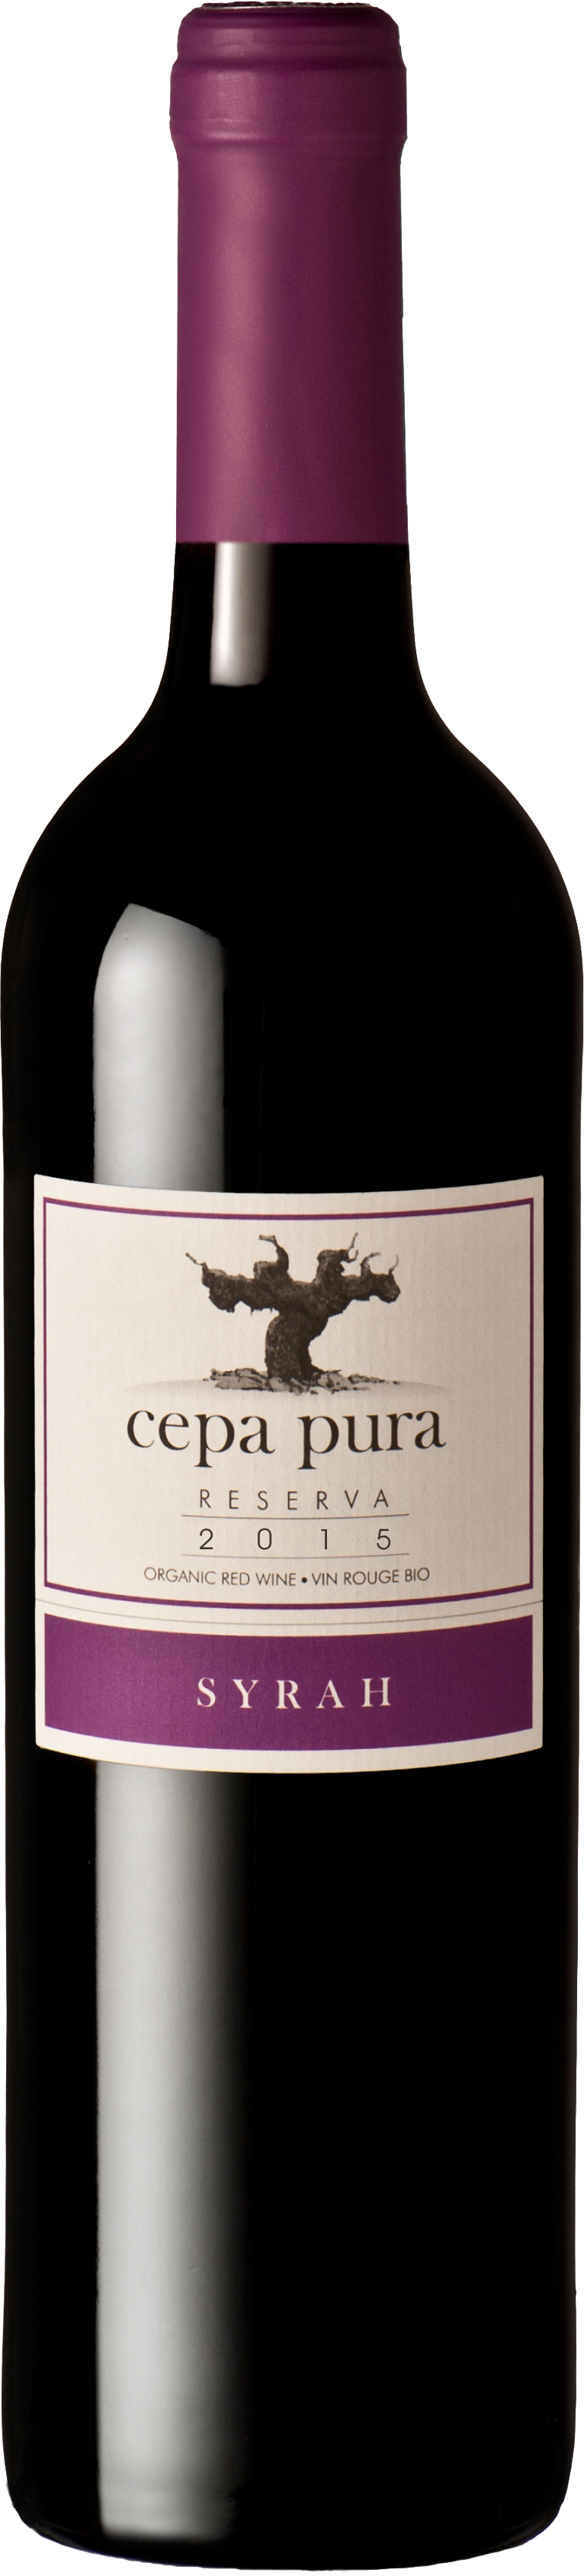 Quinta_do_Montalto_Cepa_Pura_Syrah_organic_wine_red